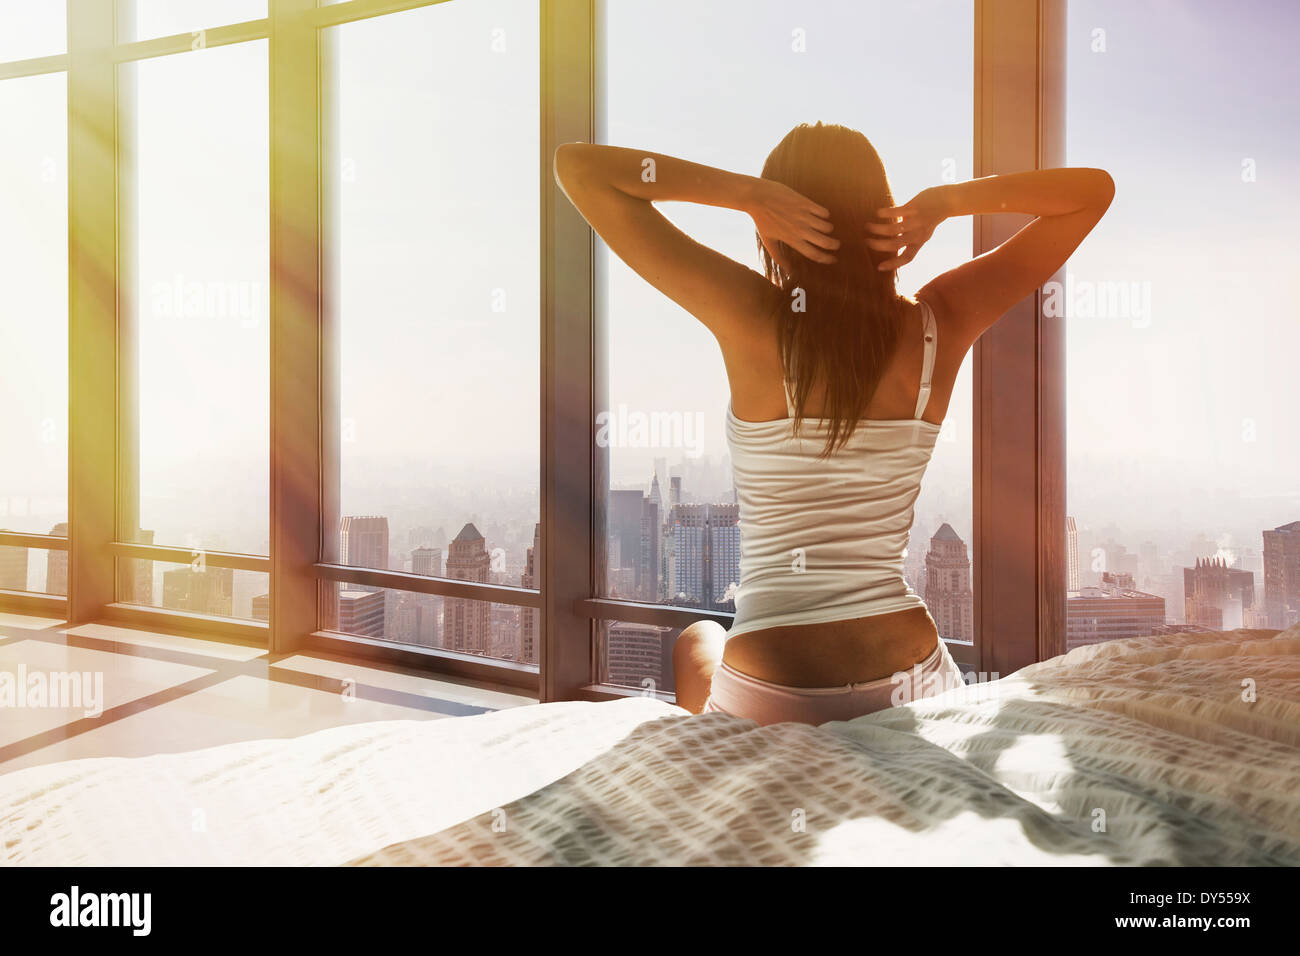 Young woman sitting on bed, stretching, overlooking city - Stock Image